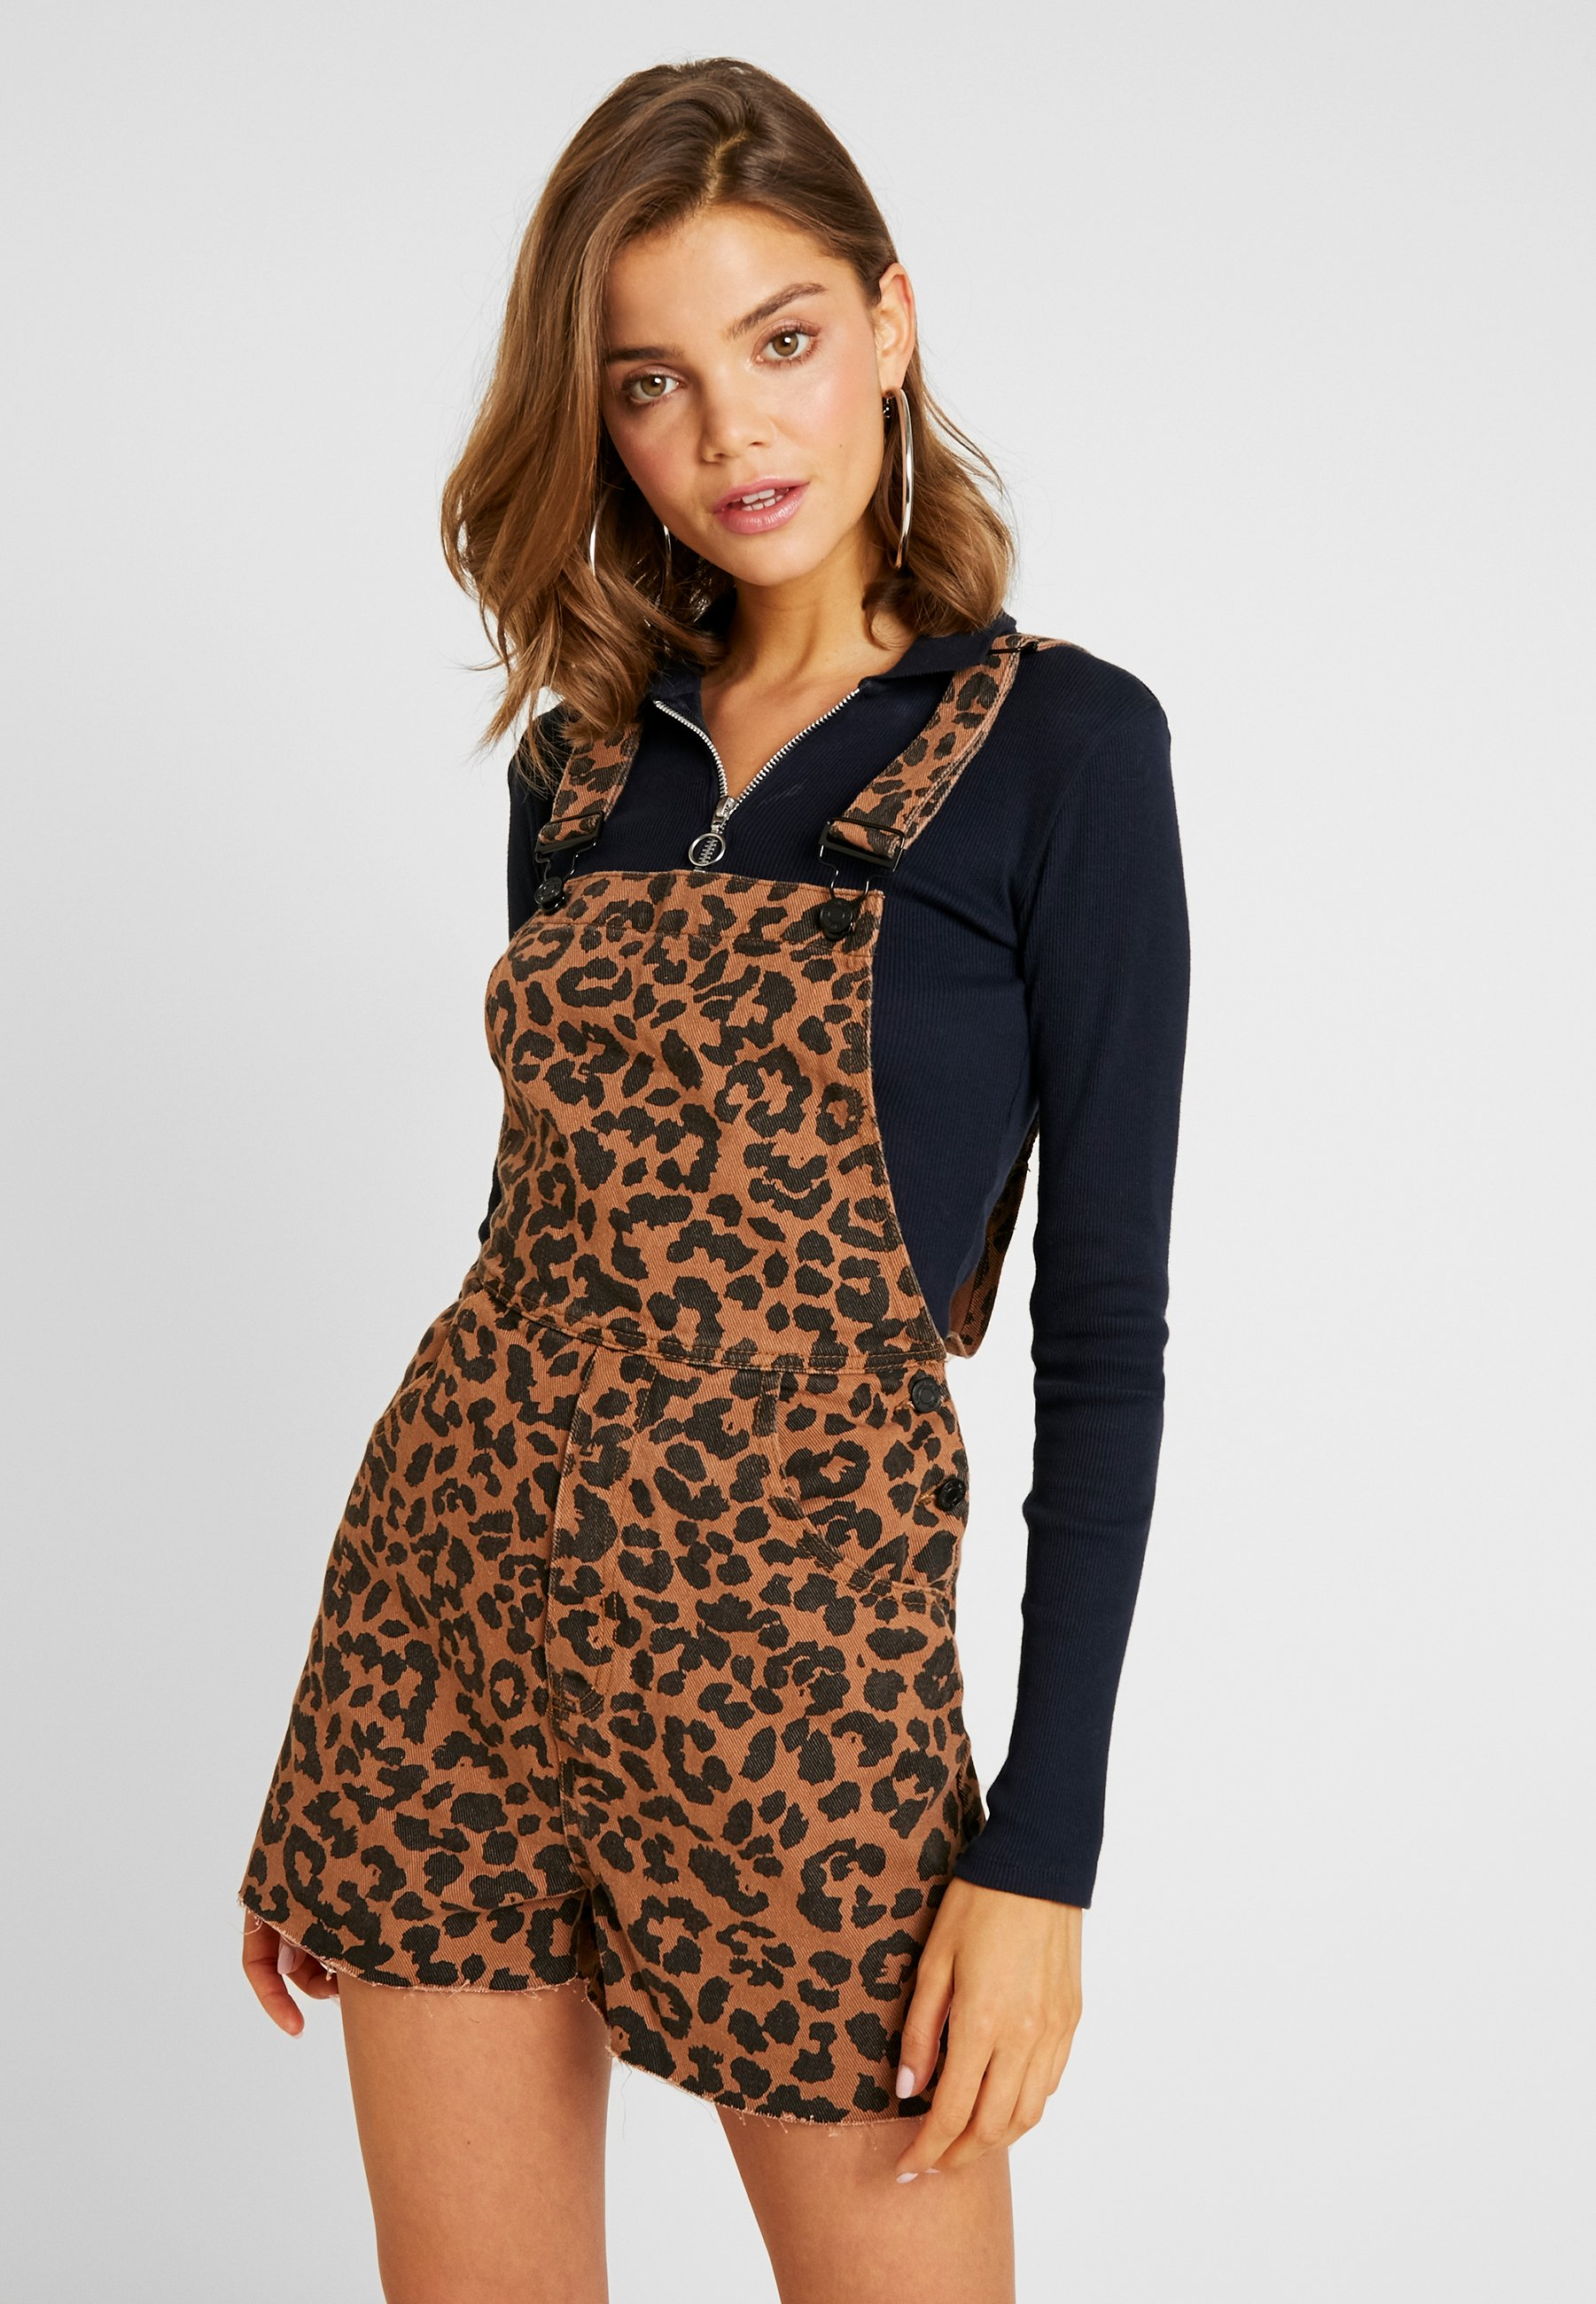 Leopard Missguided Brown DungareeSalopette Missguided Leopard DungareeSalopette Brown Missguided 5uJc3TFKl1